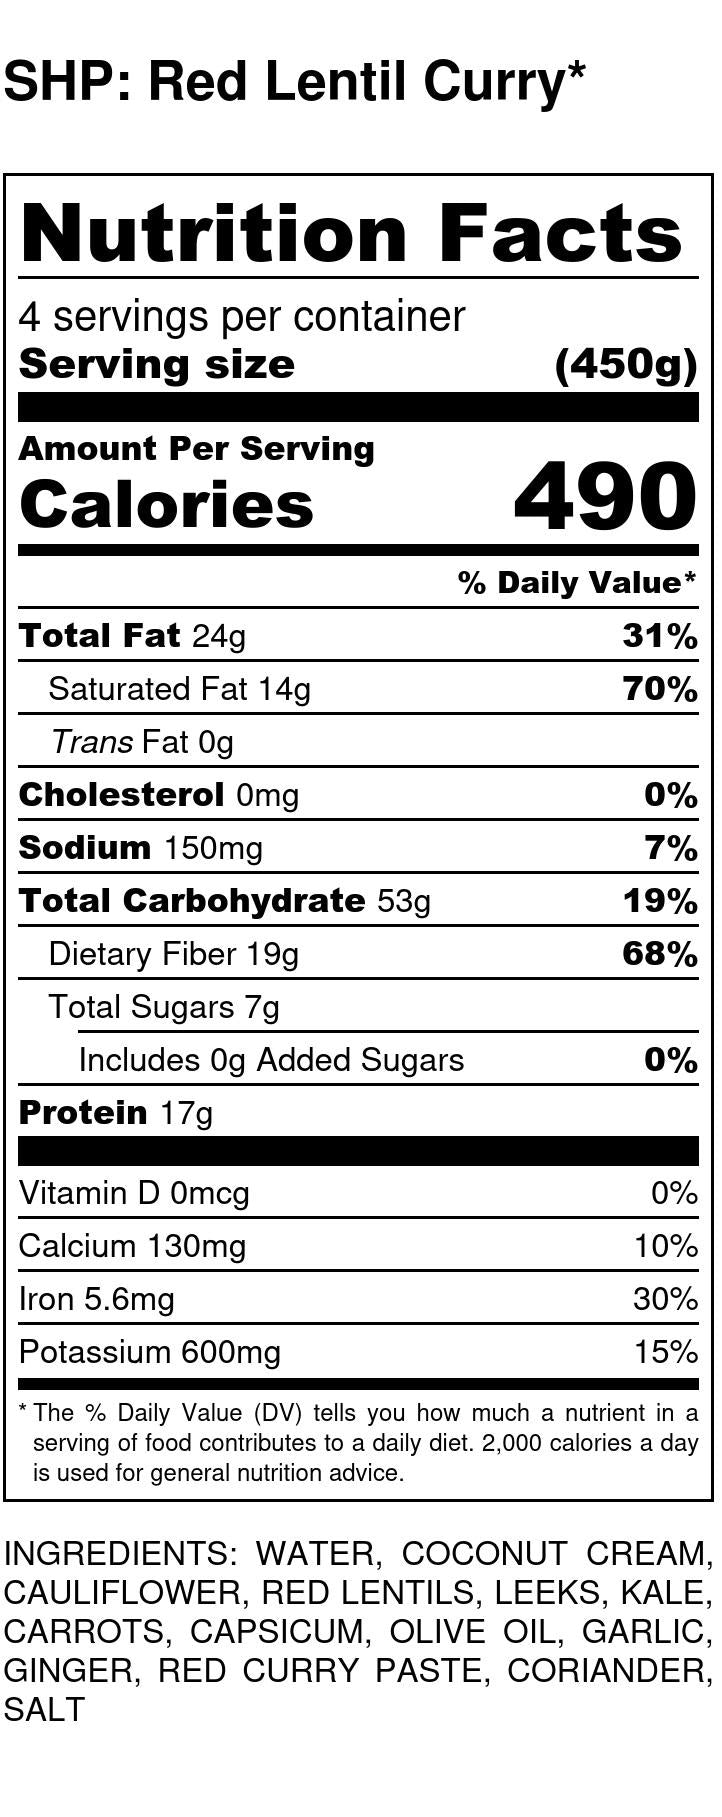 Red Lentil Curry Nutritional Info